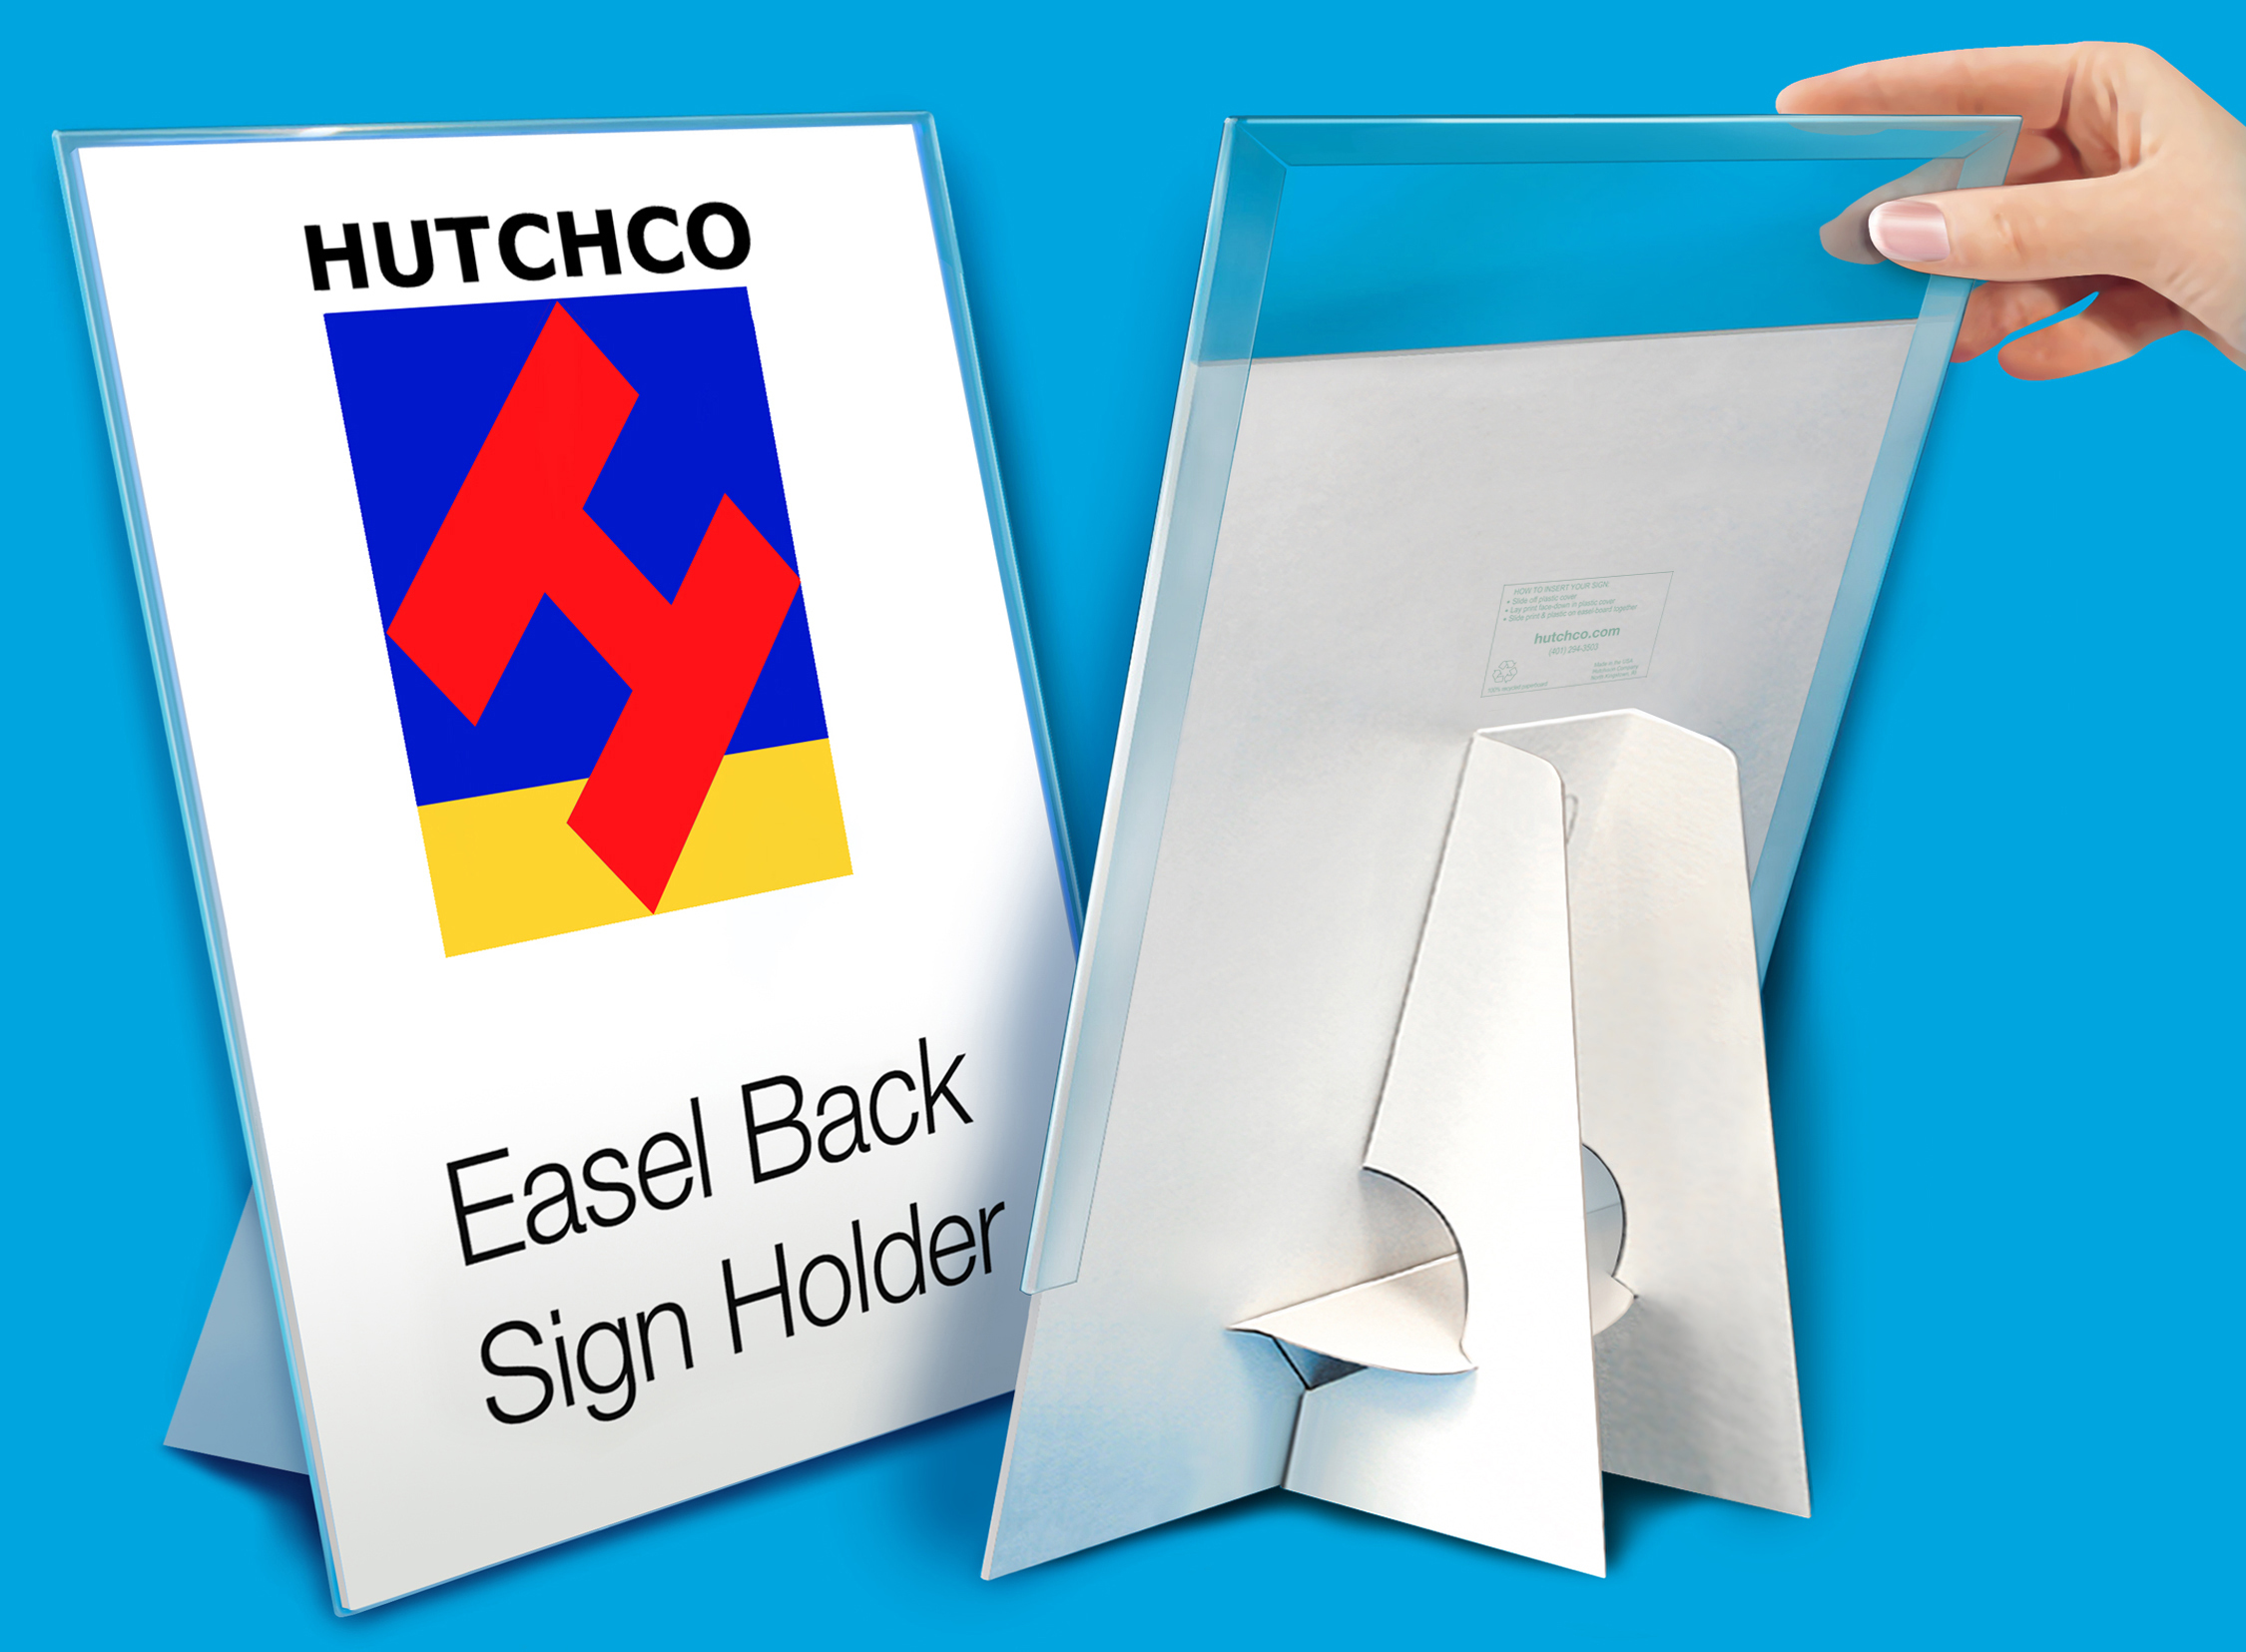 Easel Back Sign Holder Hutchco Cardboard Easel Plastic Sign Holders